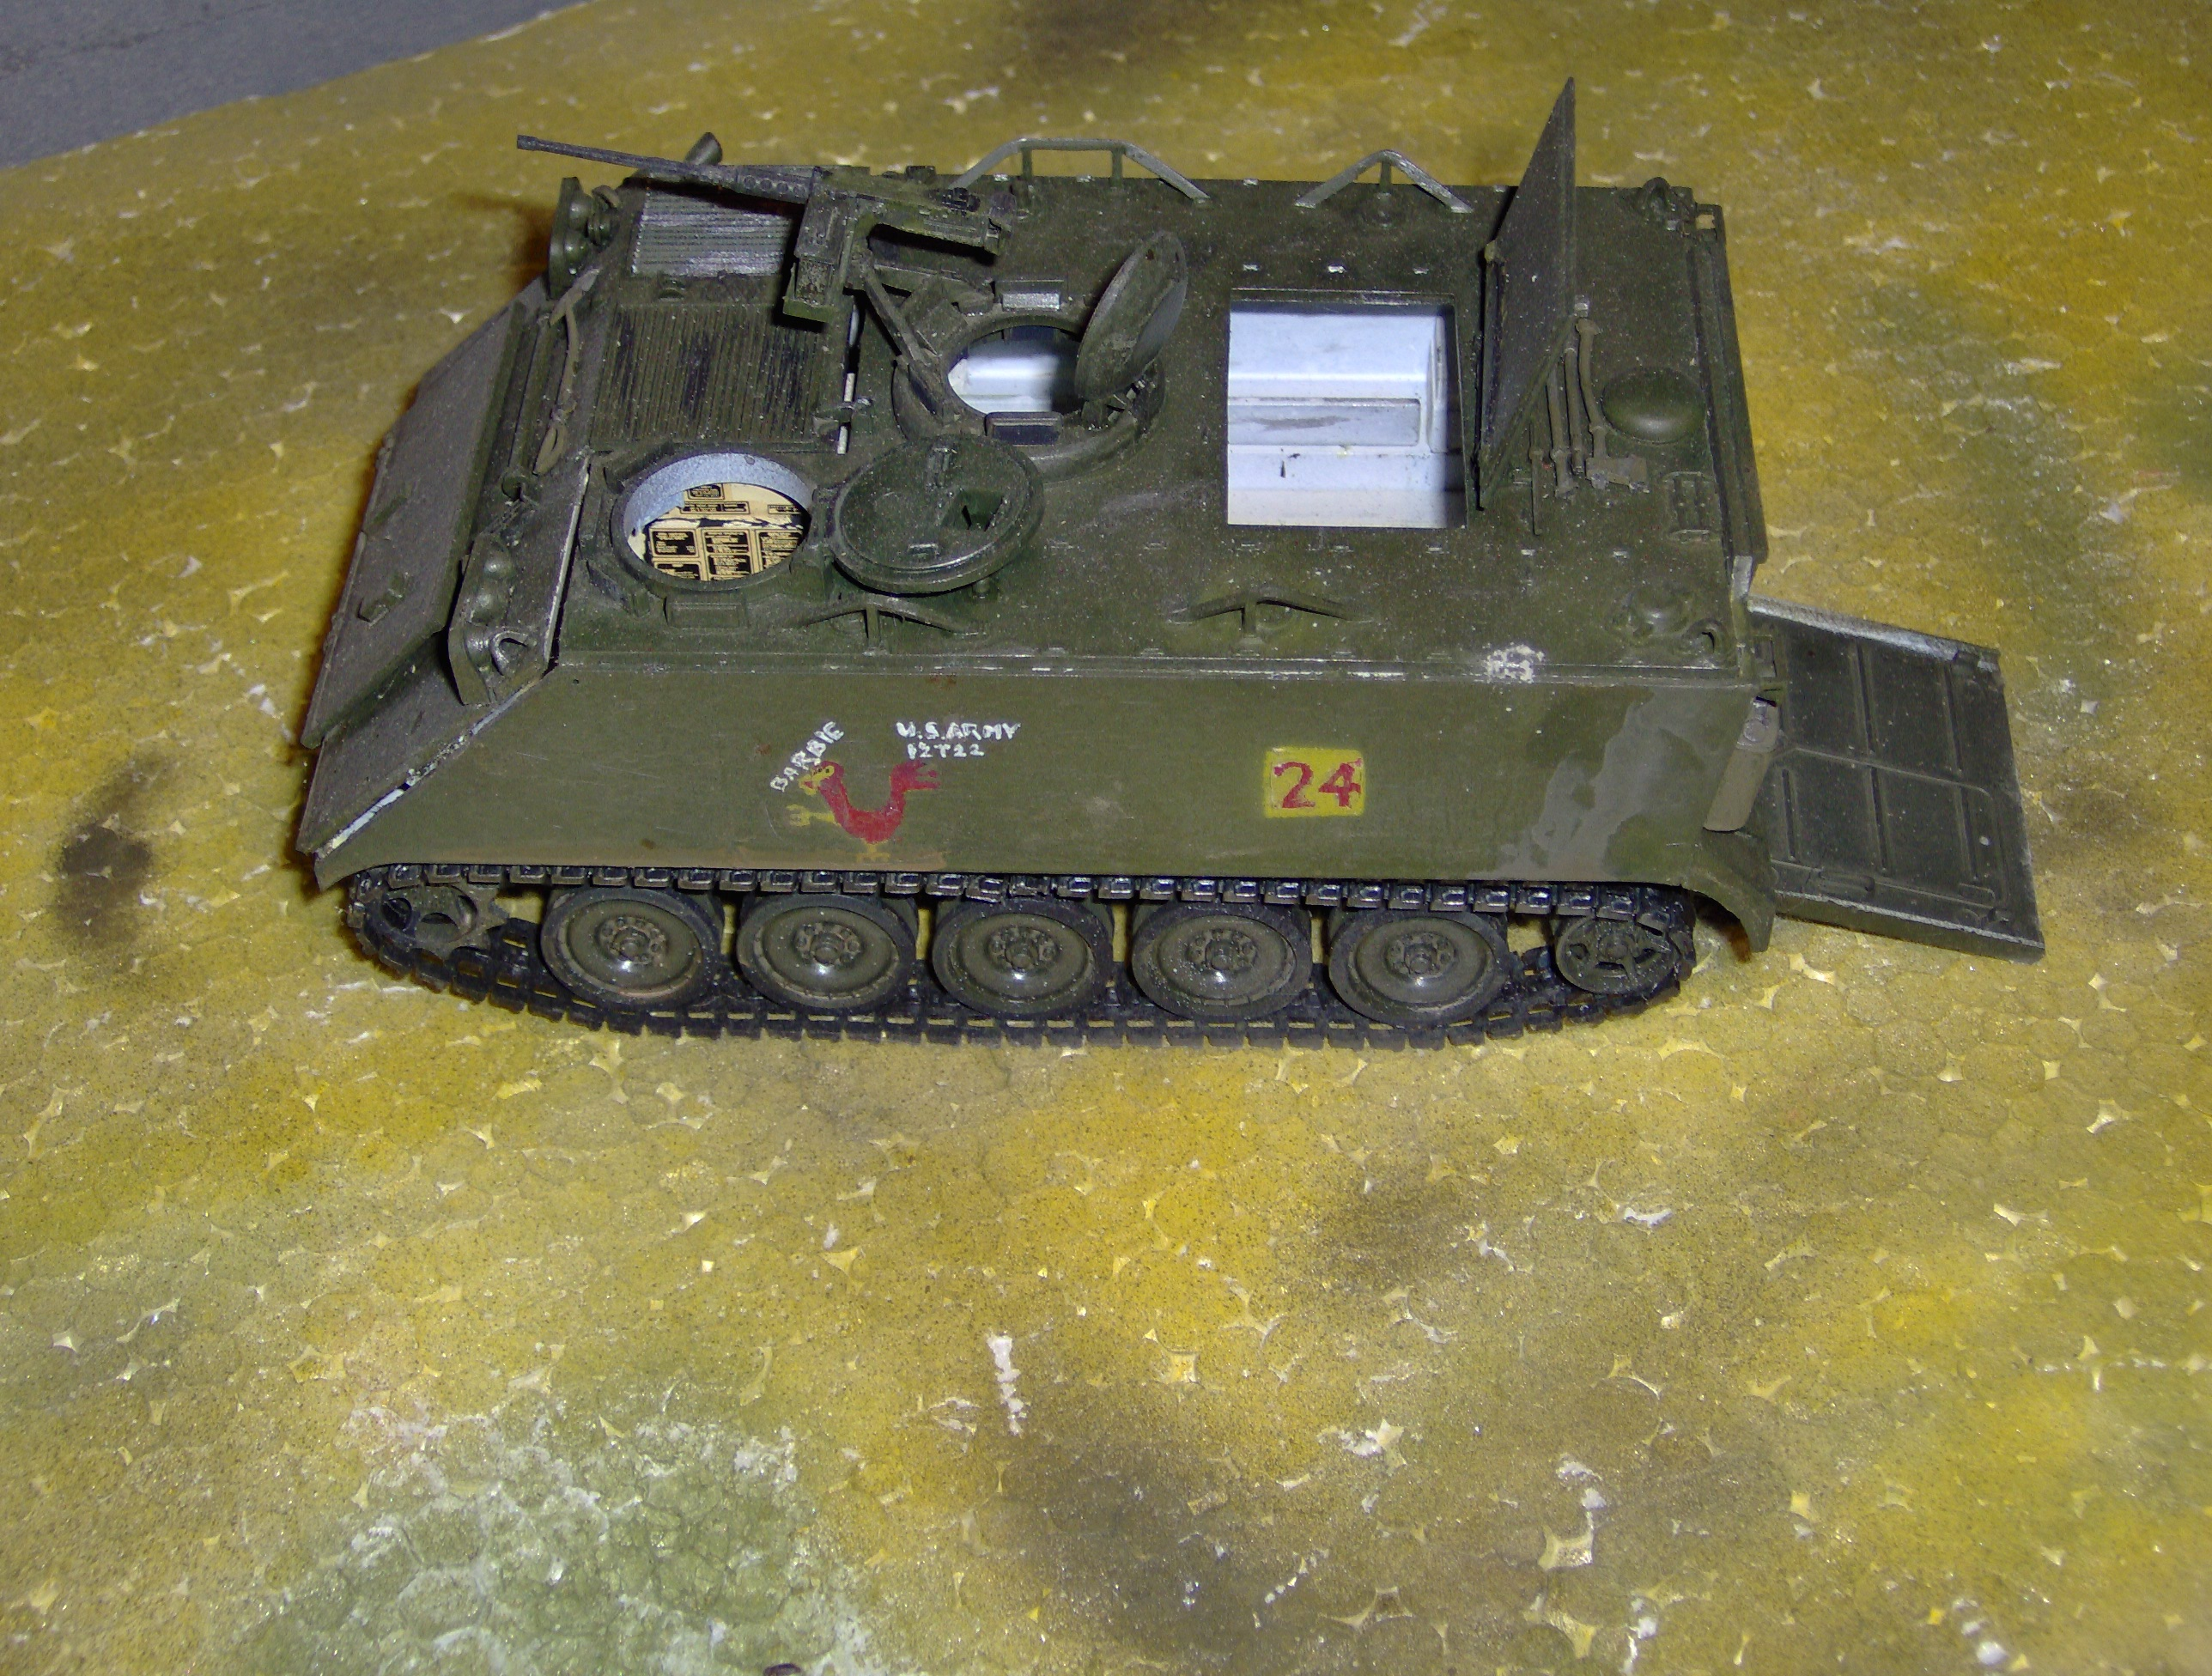 Http Commons Wikimedia Org Wiki File M113 Plastic Model Jpg